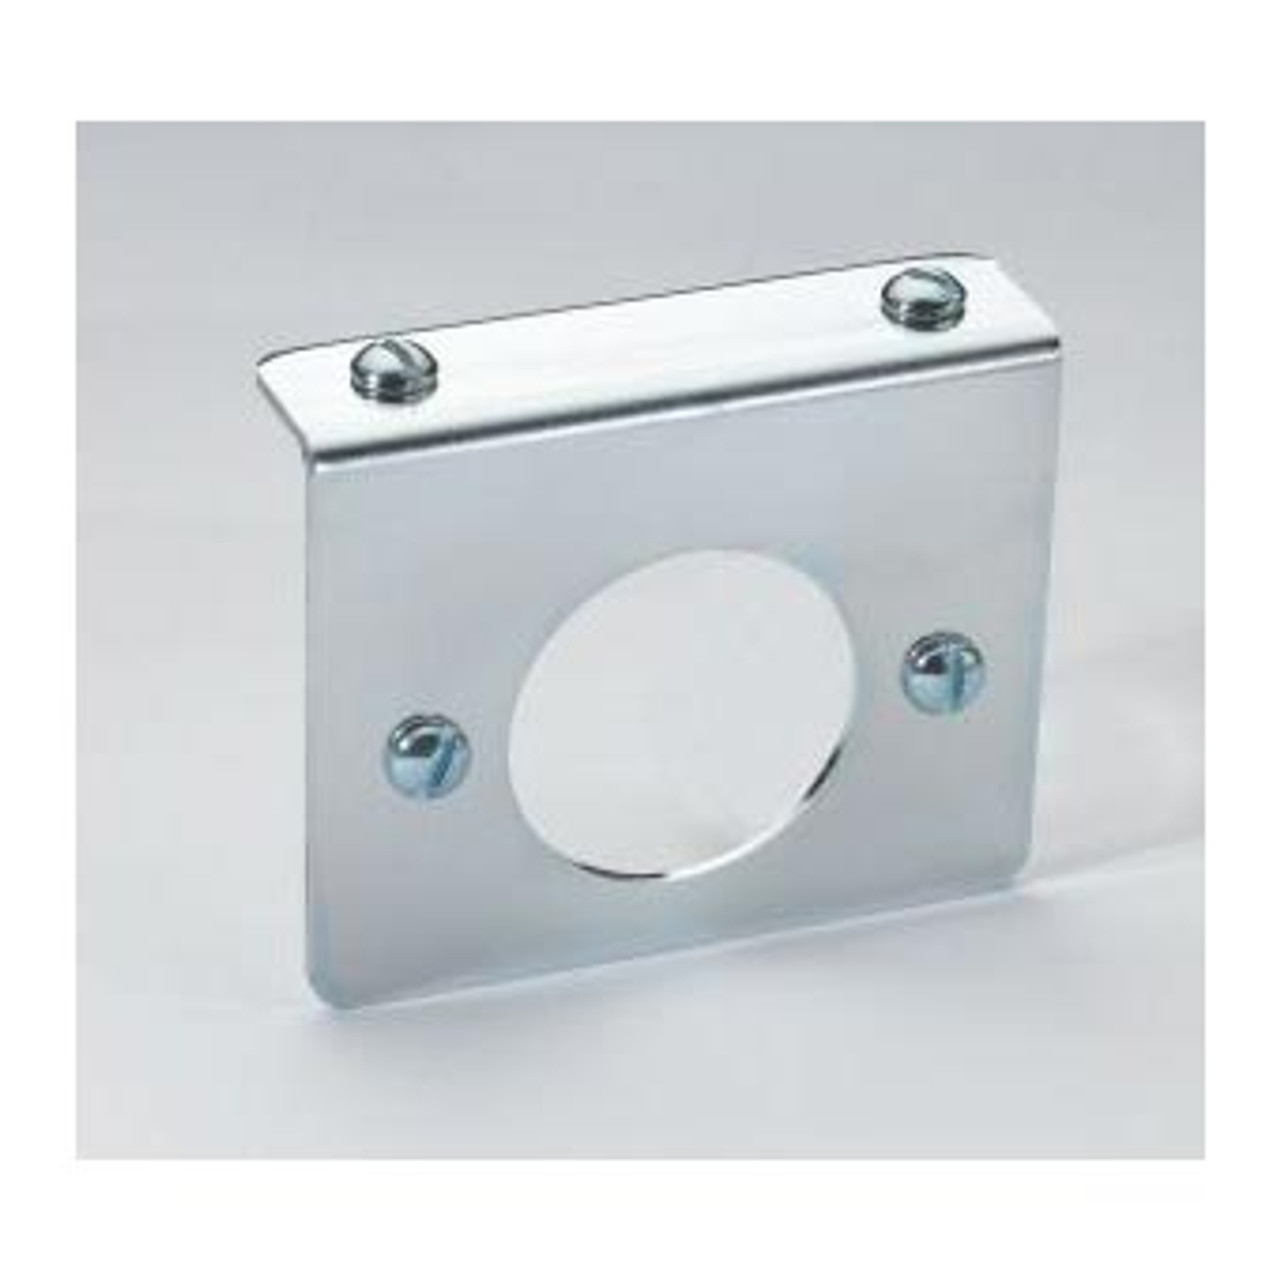 TRLR CONNECT MT BRACKET PLATED STEEL